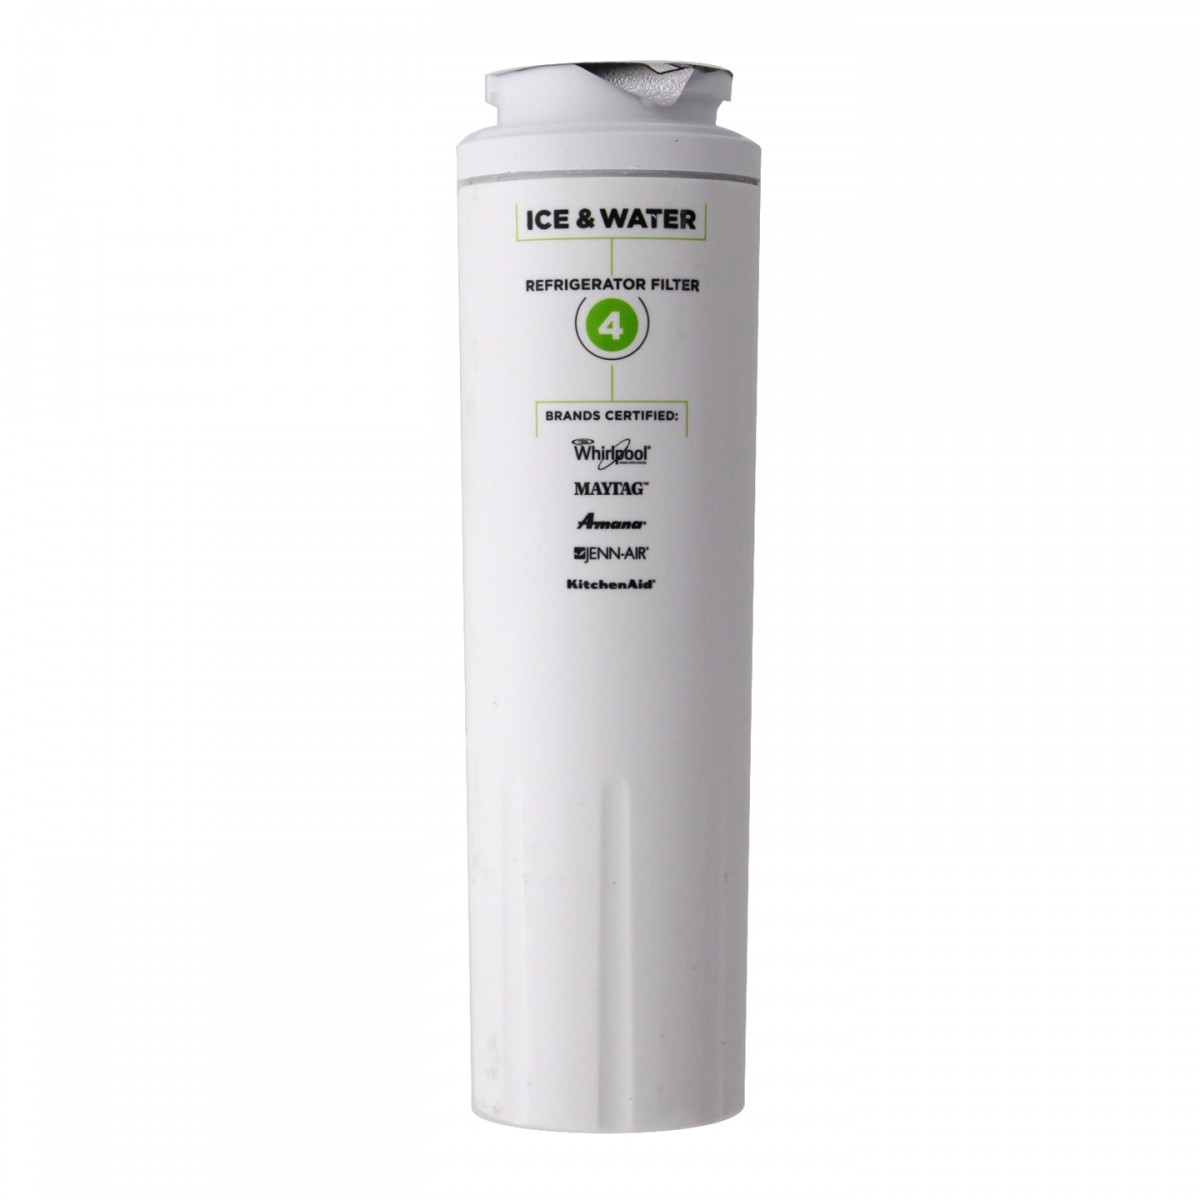 Everydrop Ice And Water Refrigerator Filter 4 By Whirlpool